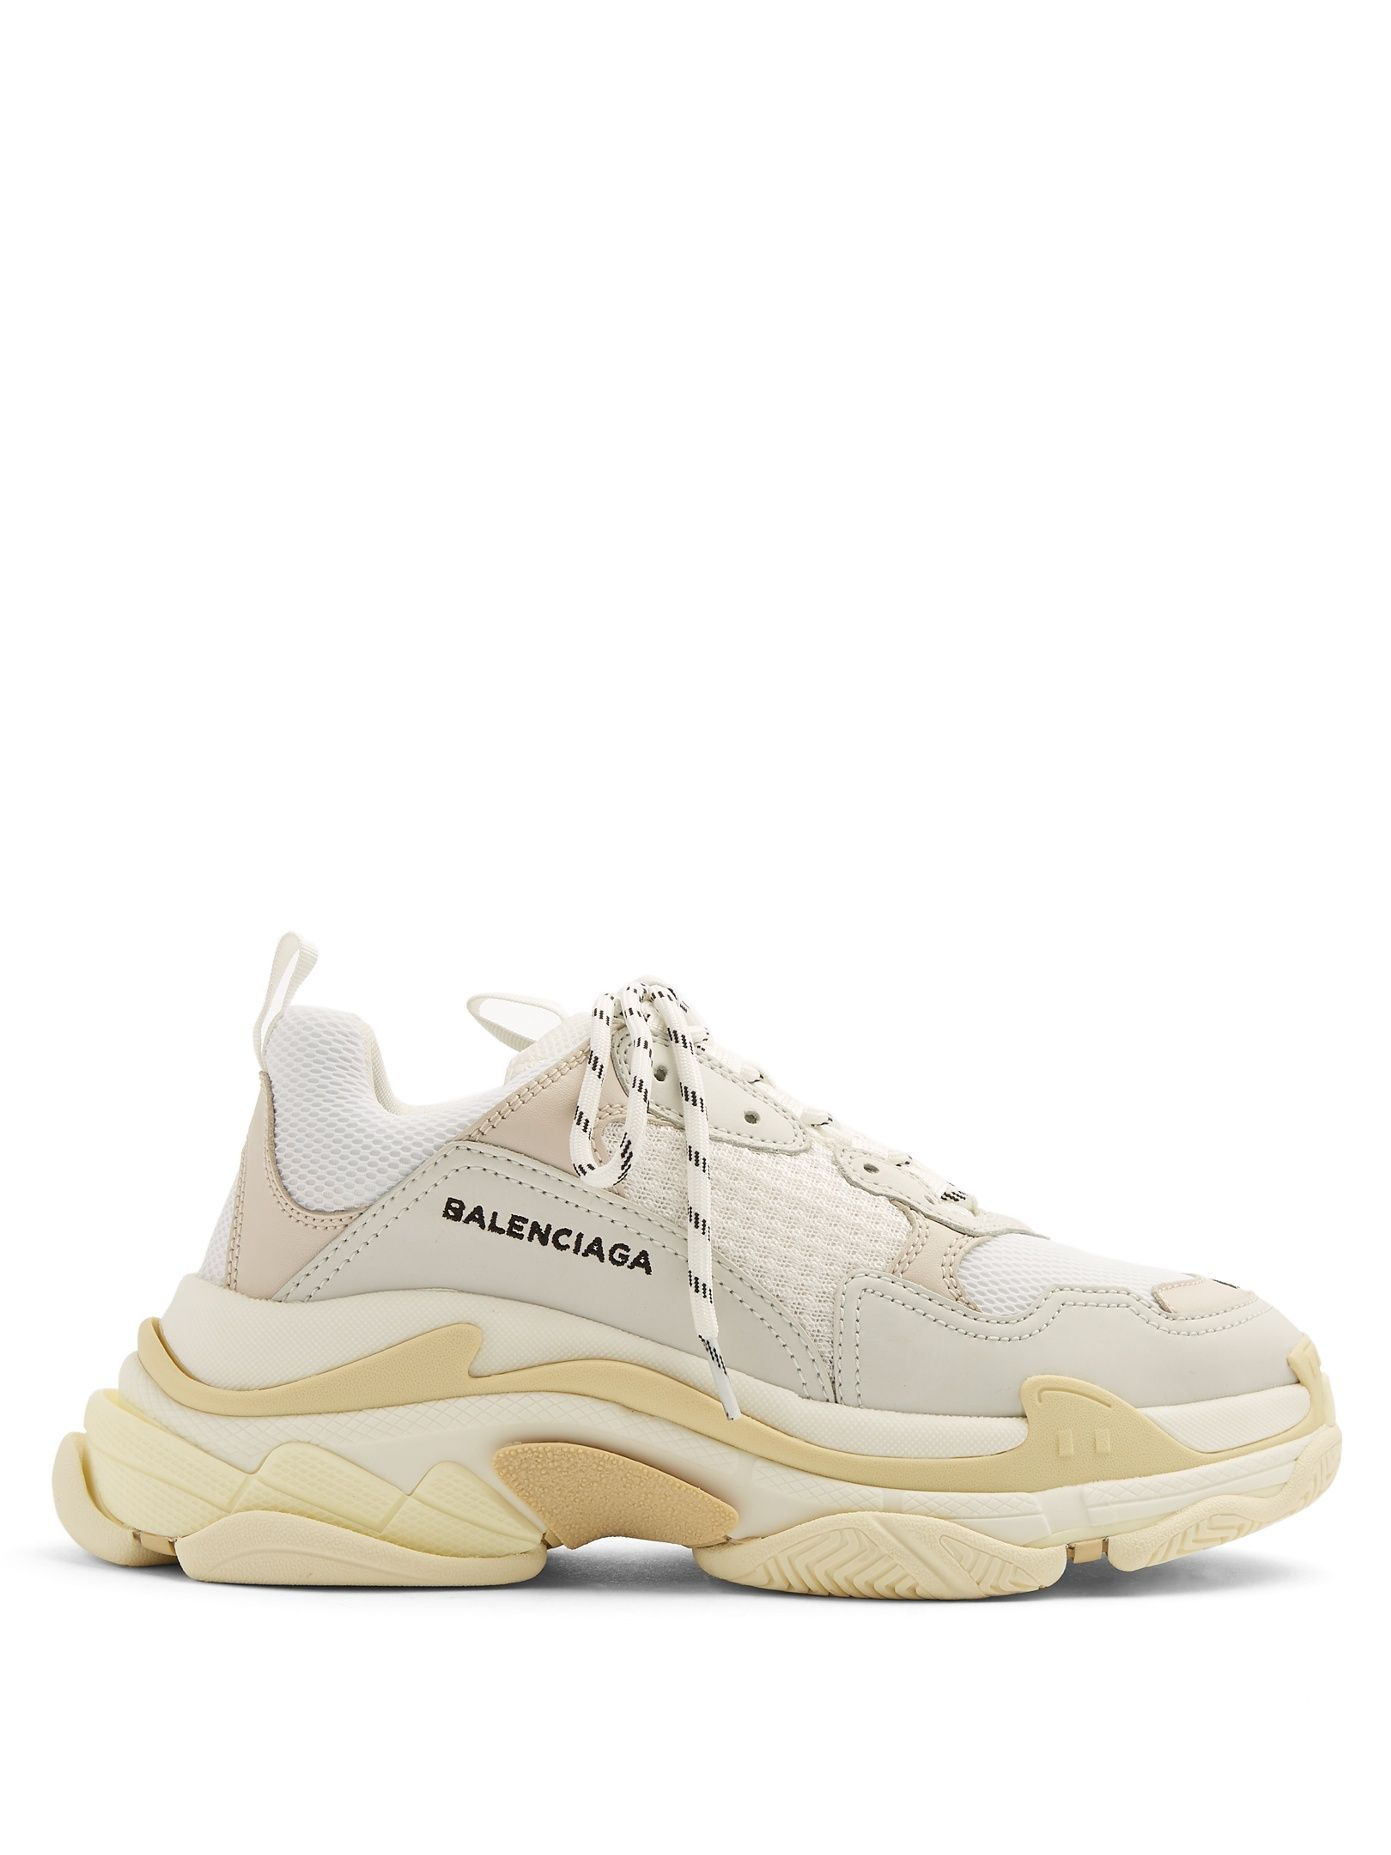 0313499b423 Click here to buy Balenciaga Triple S low-top trainers at MATCHESFASHION.COM